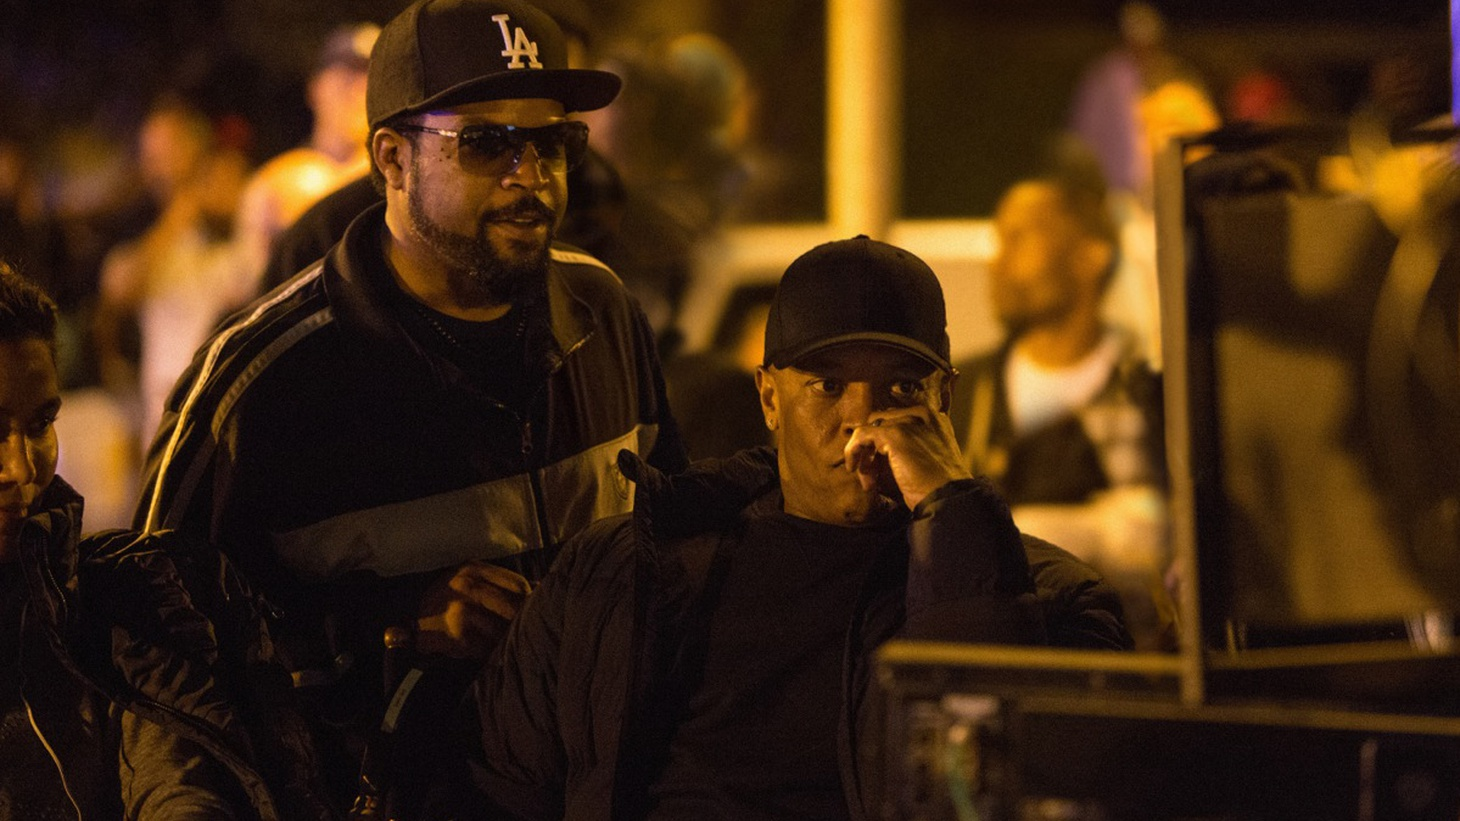 Rapper, actor and producer Ice Cube long hoped to make a movie about N.W.A., the hip hop group that gave him his start. Straight Outta Compton faced hurdles and backlash but that was no surprise to Cube. He tells us how he finally got the story to the screen.